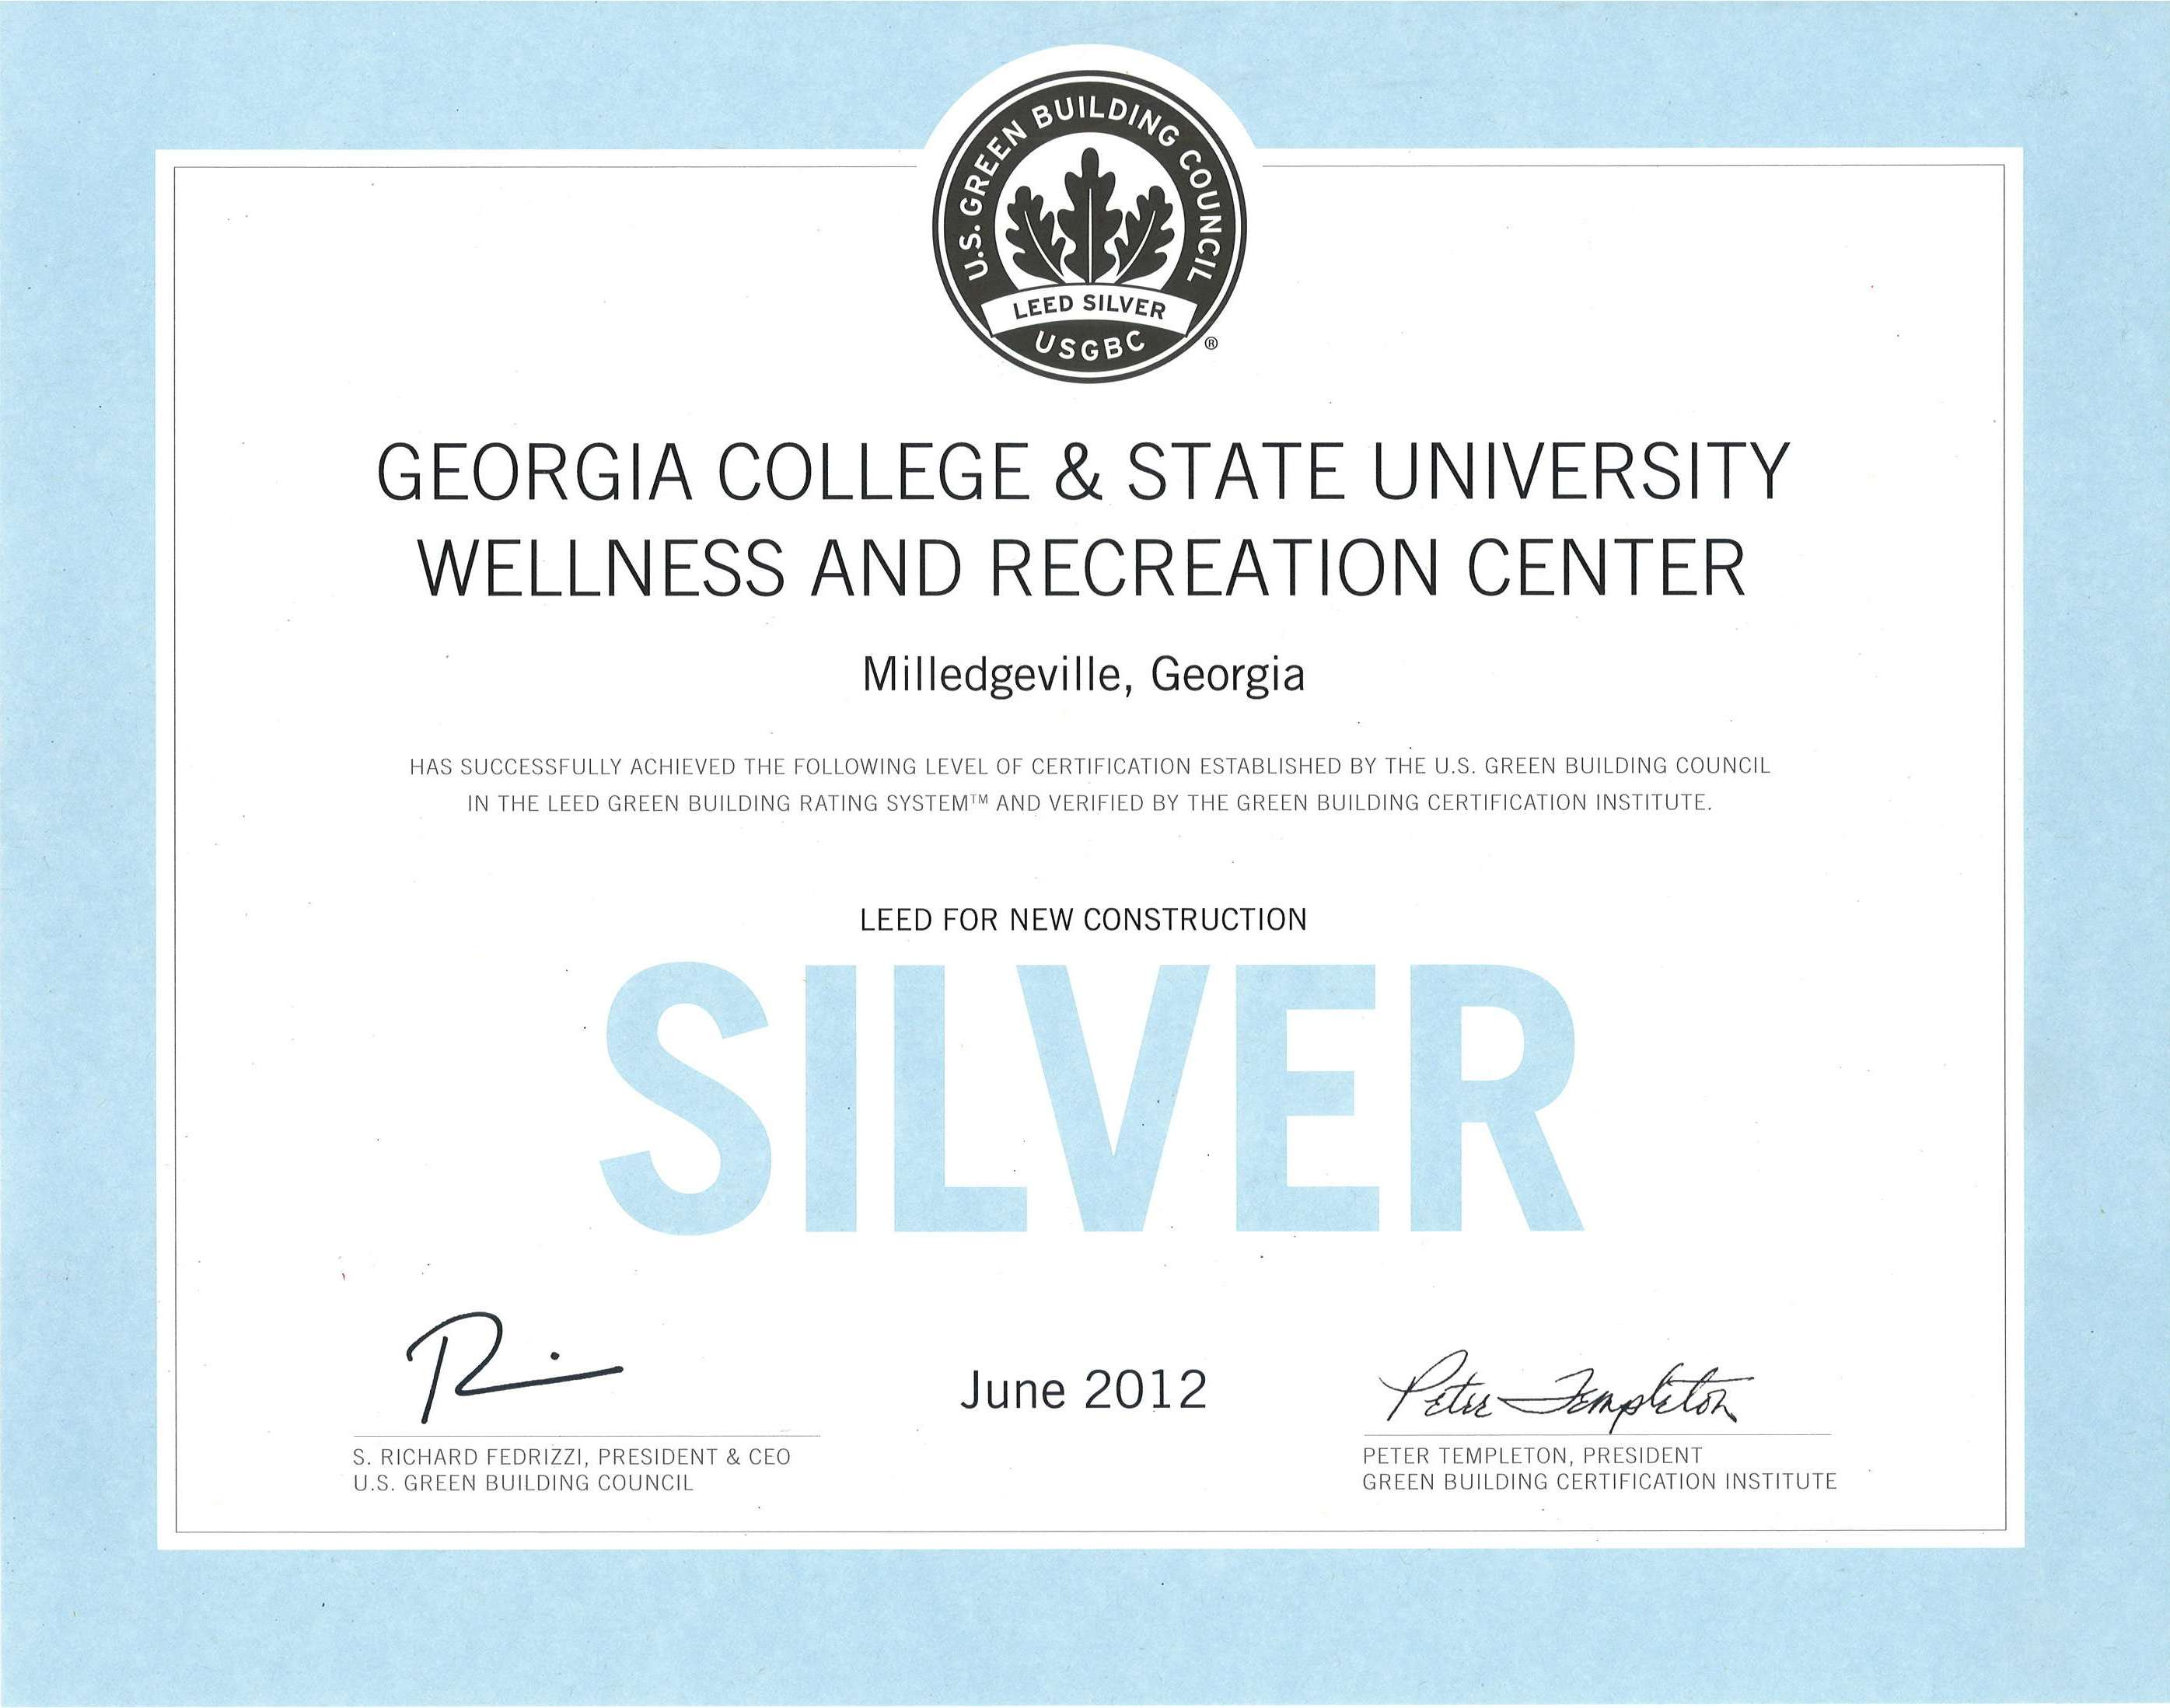 Its Official Wellness Center Makes Leed Silver Georgia College